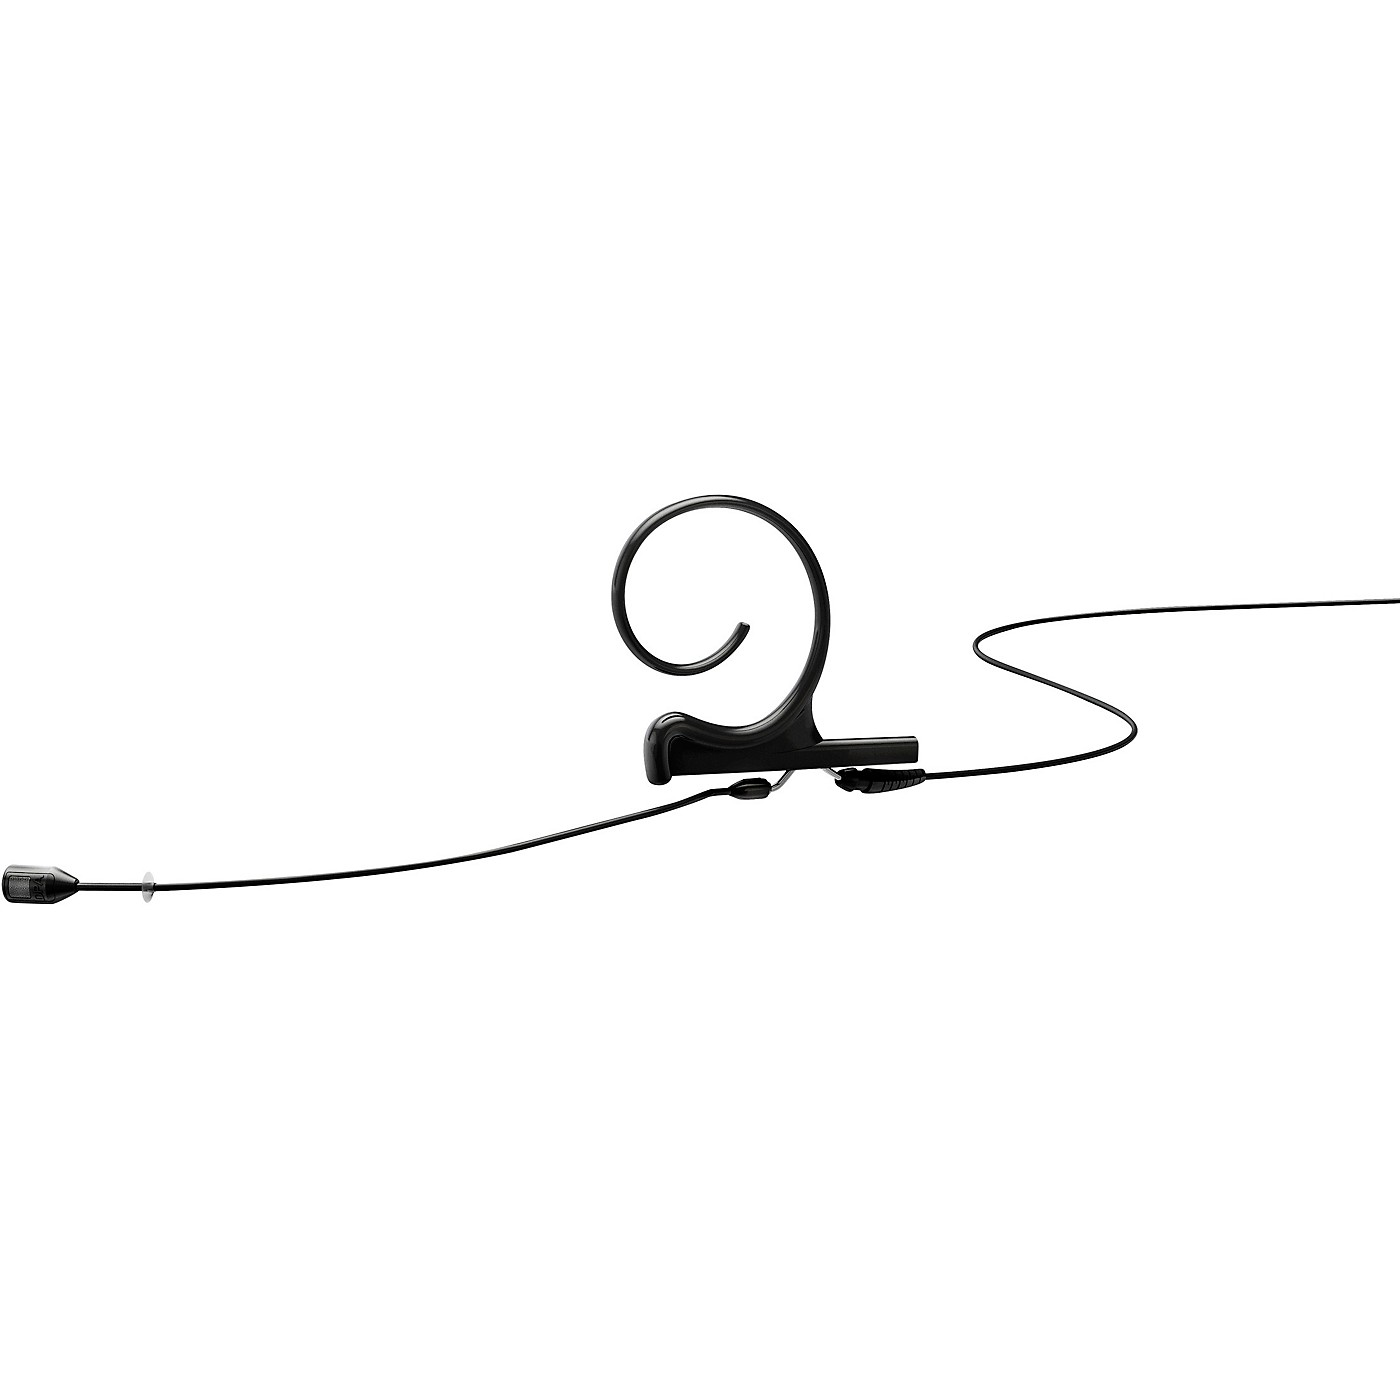 DPA Microphones d:fine FID88 Directional Headset Microphone—100mm boom length thumbnail